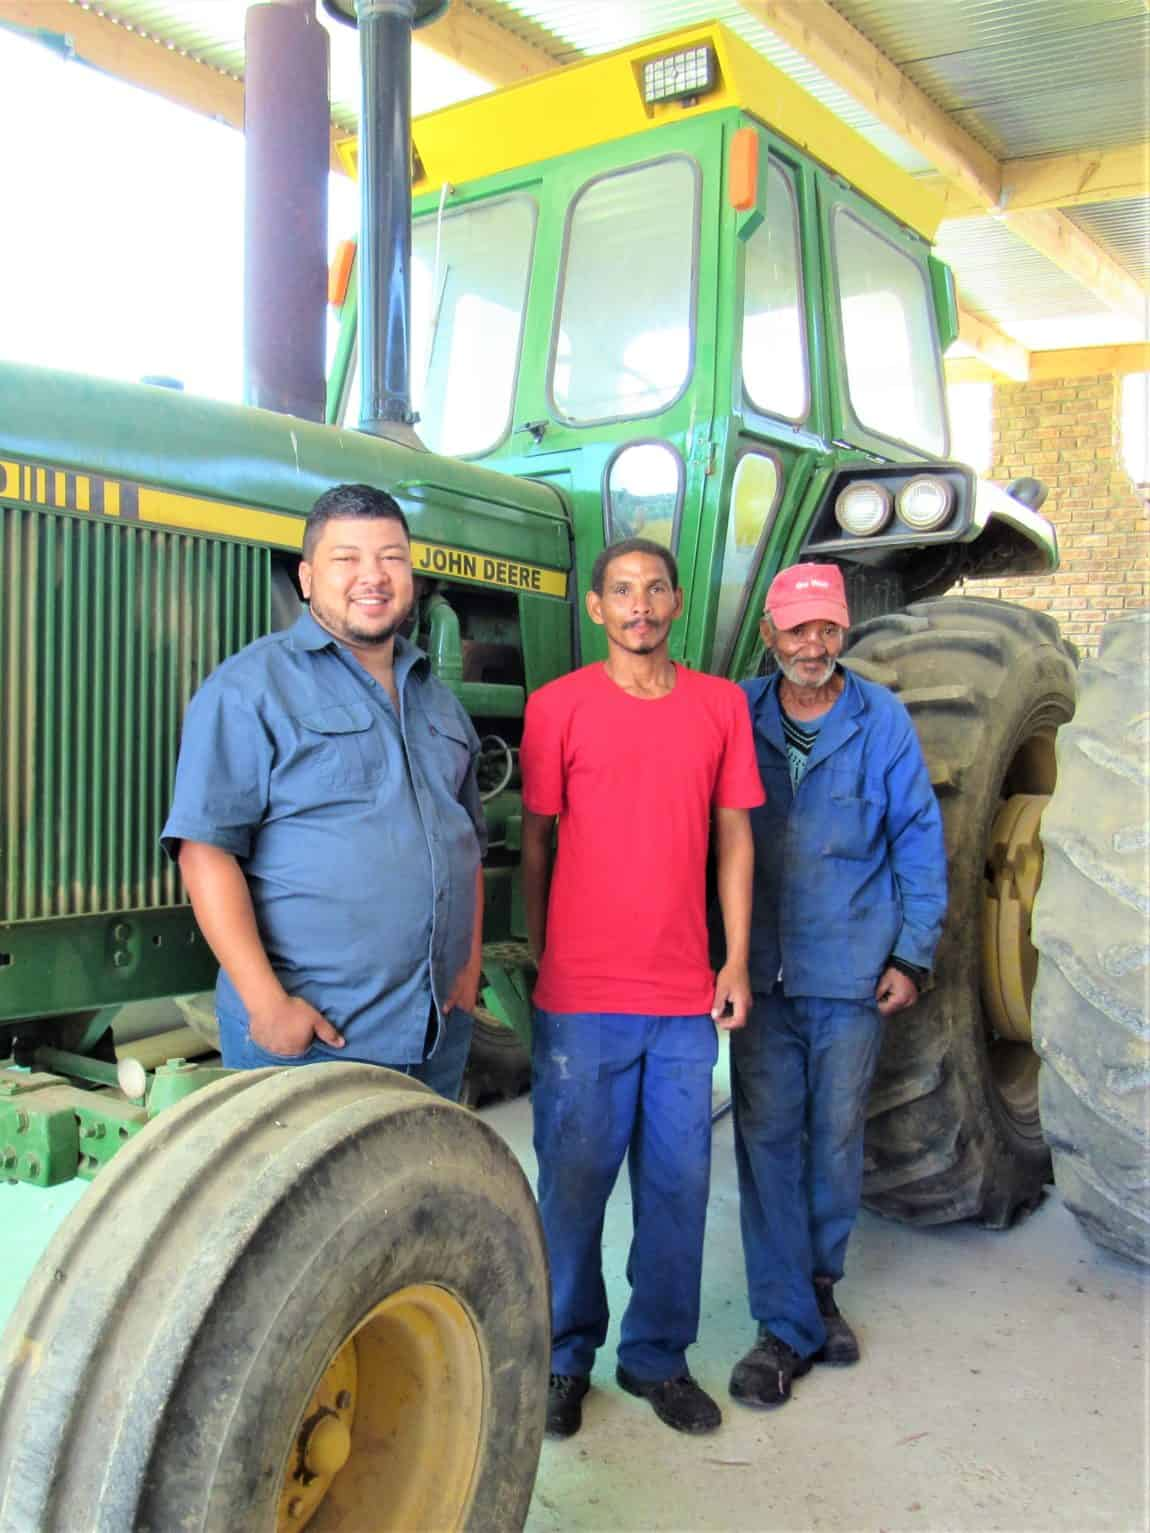 Gary Patience (left) with his committed team of agriworkers, Jason Pedro (middle) and Julie de Bruin (right)